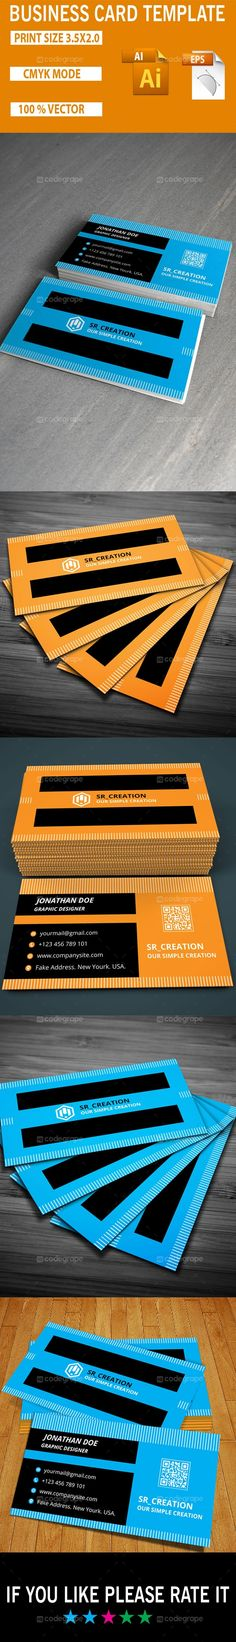 Corporate Business Card Template - http://www.codegrape.com/item/corporate-business-card-template/5334